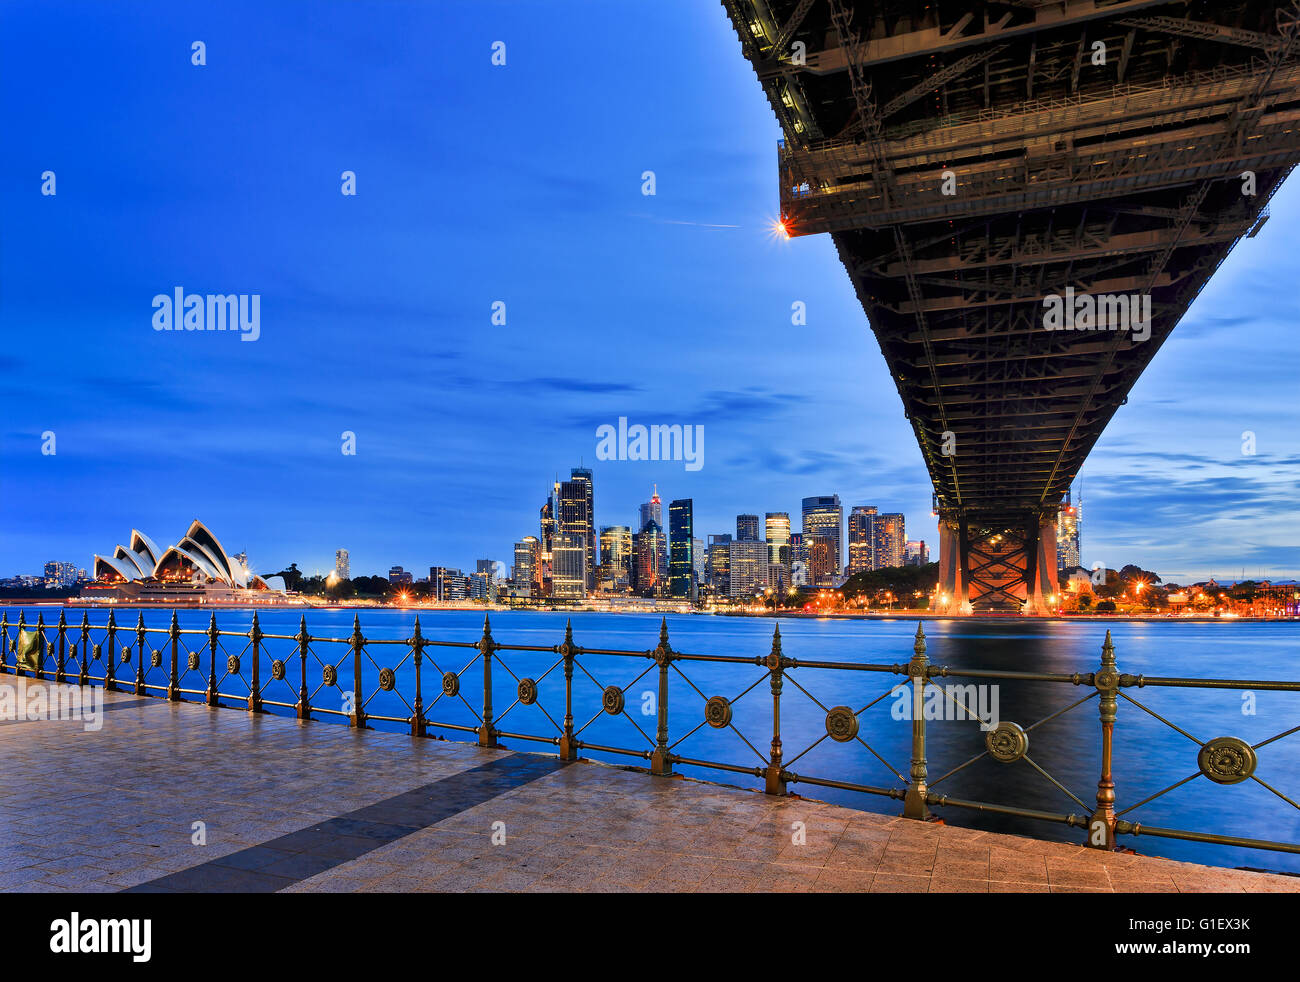 Major Sydney city clandmarks - Harbour Bridge, Circular Quay and CBD skyscrapers at sunset across harbour from Milsons - Stock Image